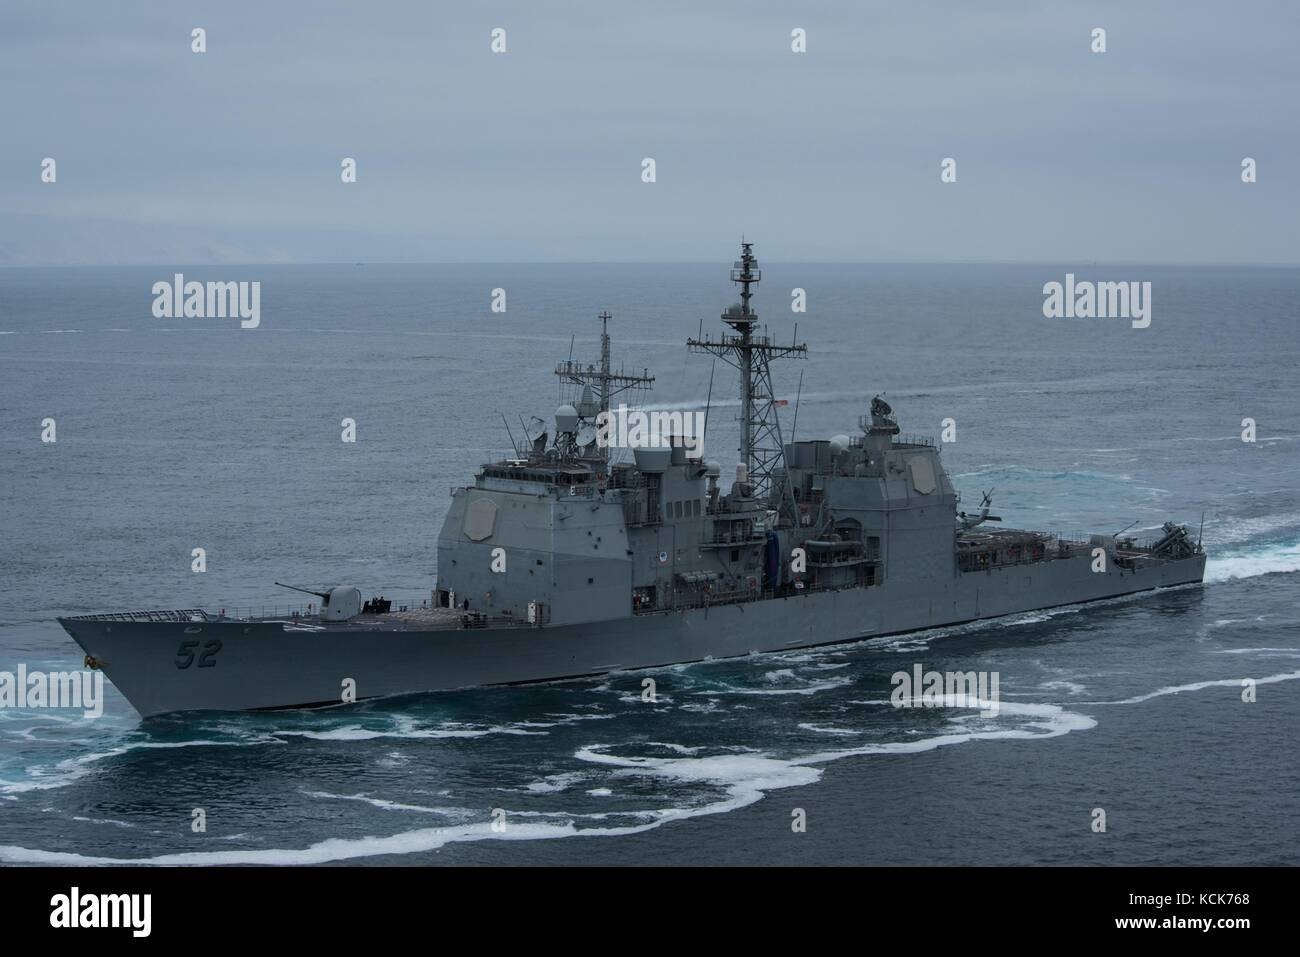 The U.S. Navy Ticonderoga-class guided-missile cruiser USS Bunker Hill steams underway during the Show of Force - Stock Image